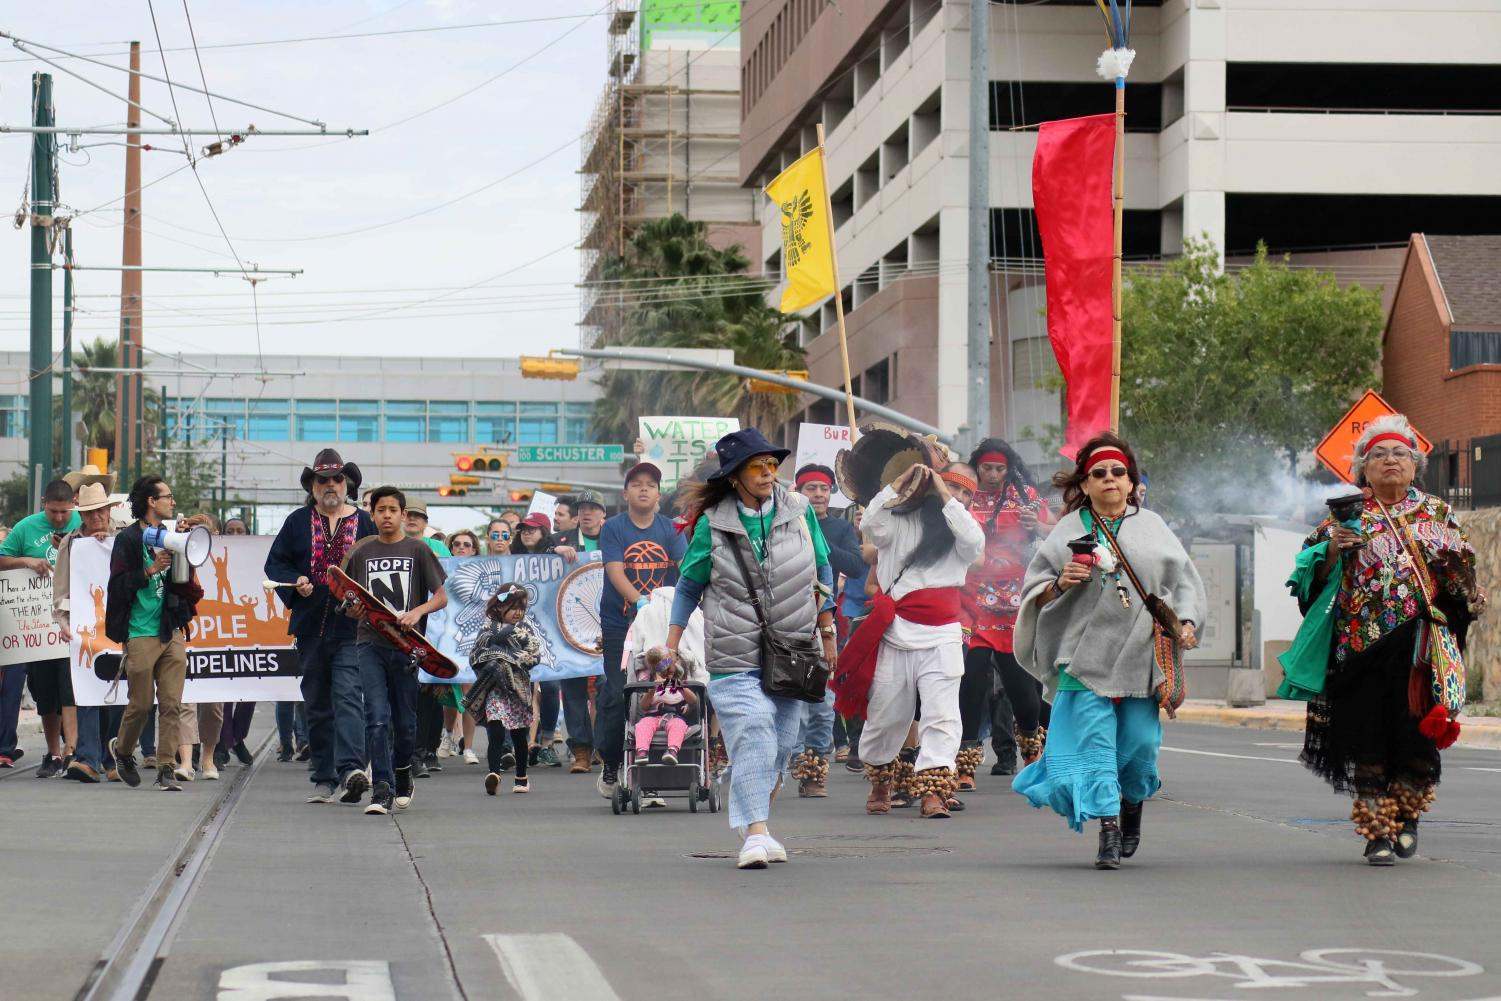 Marchers head down Oregon St. from Centennial Plaza on Sunday, April 22 for the March for Planet Earth.